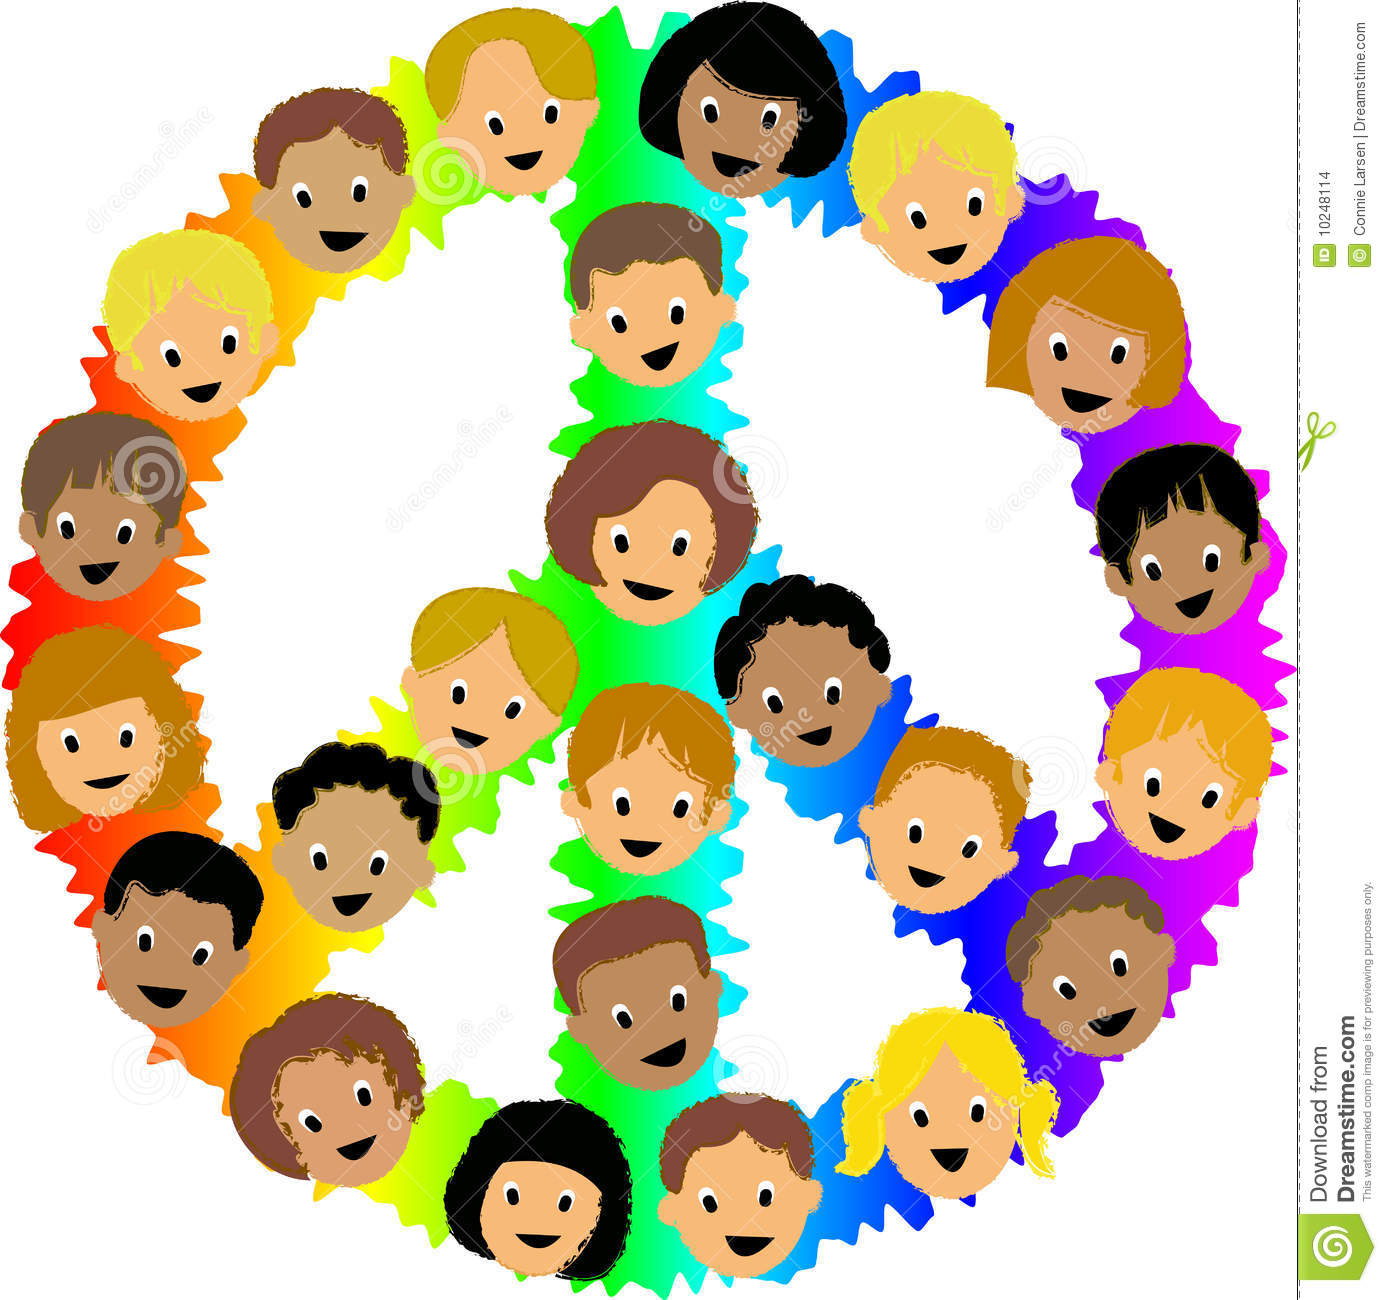 Kids peace signeps stock vector illustration of clipart 10248114 kids peace signeps biocorpaavc